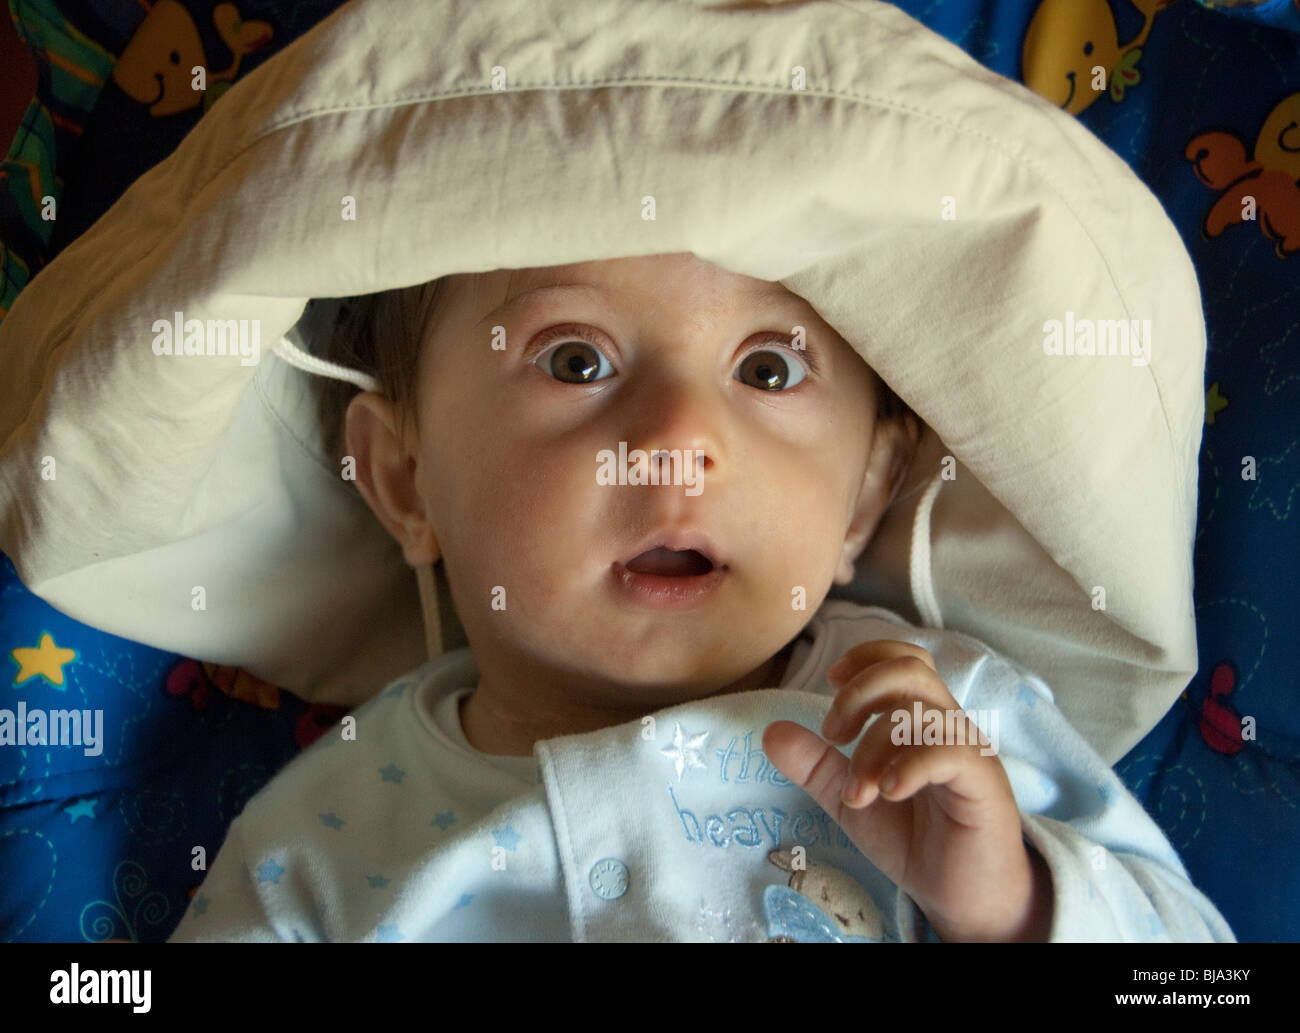 baby boy in mom's sun protection hat - Stock Image